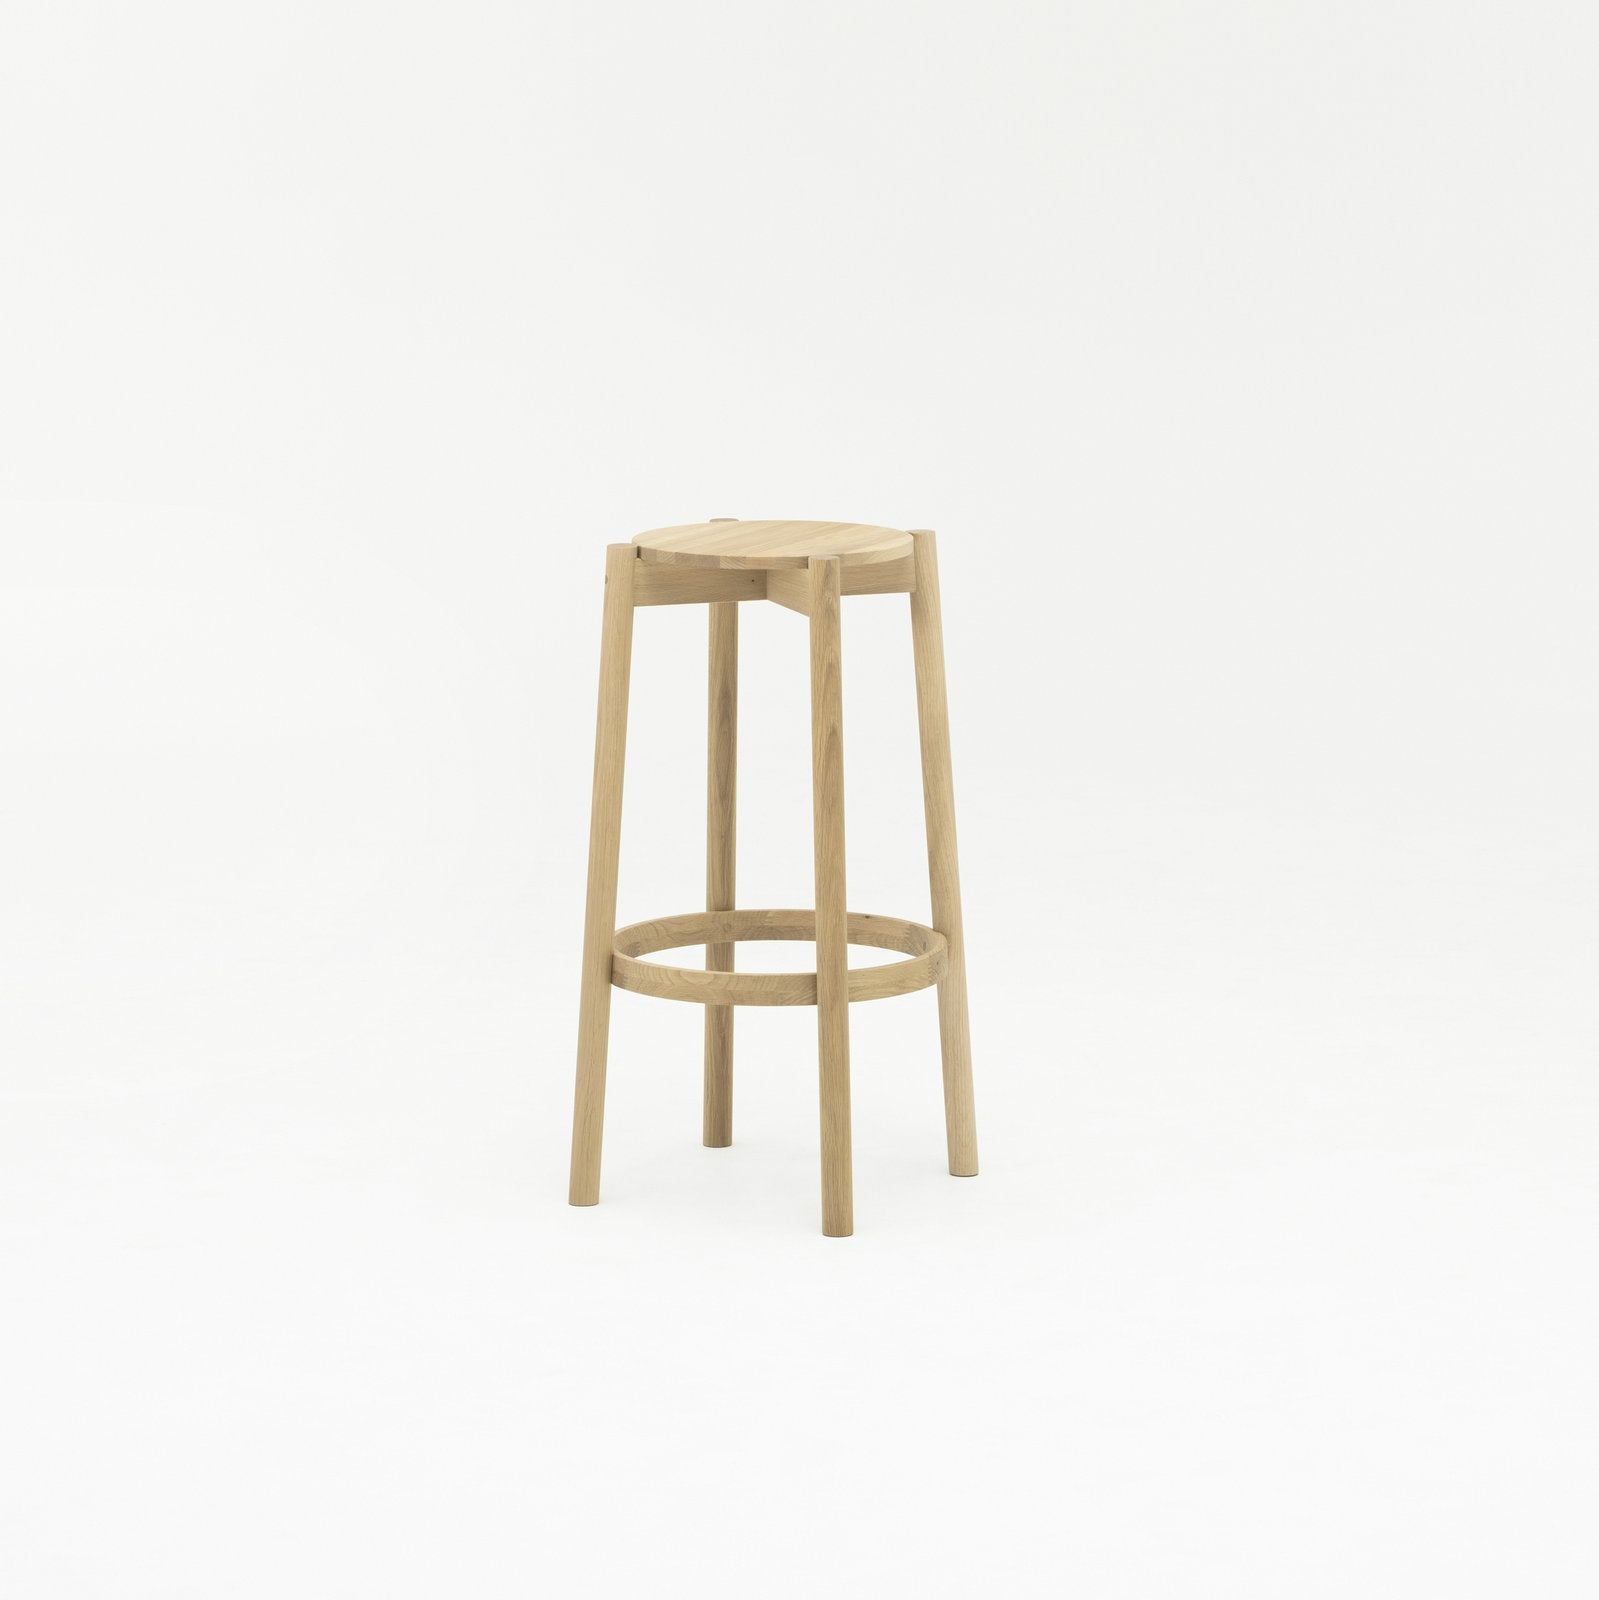 Karimoku New Standard - CASTOR BAR STOOL HIGH oak - Stool